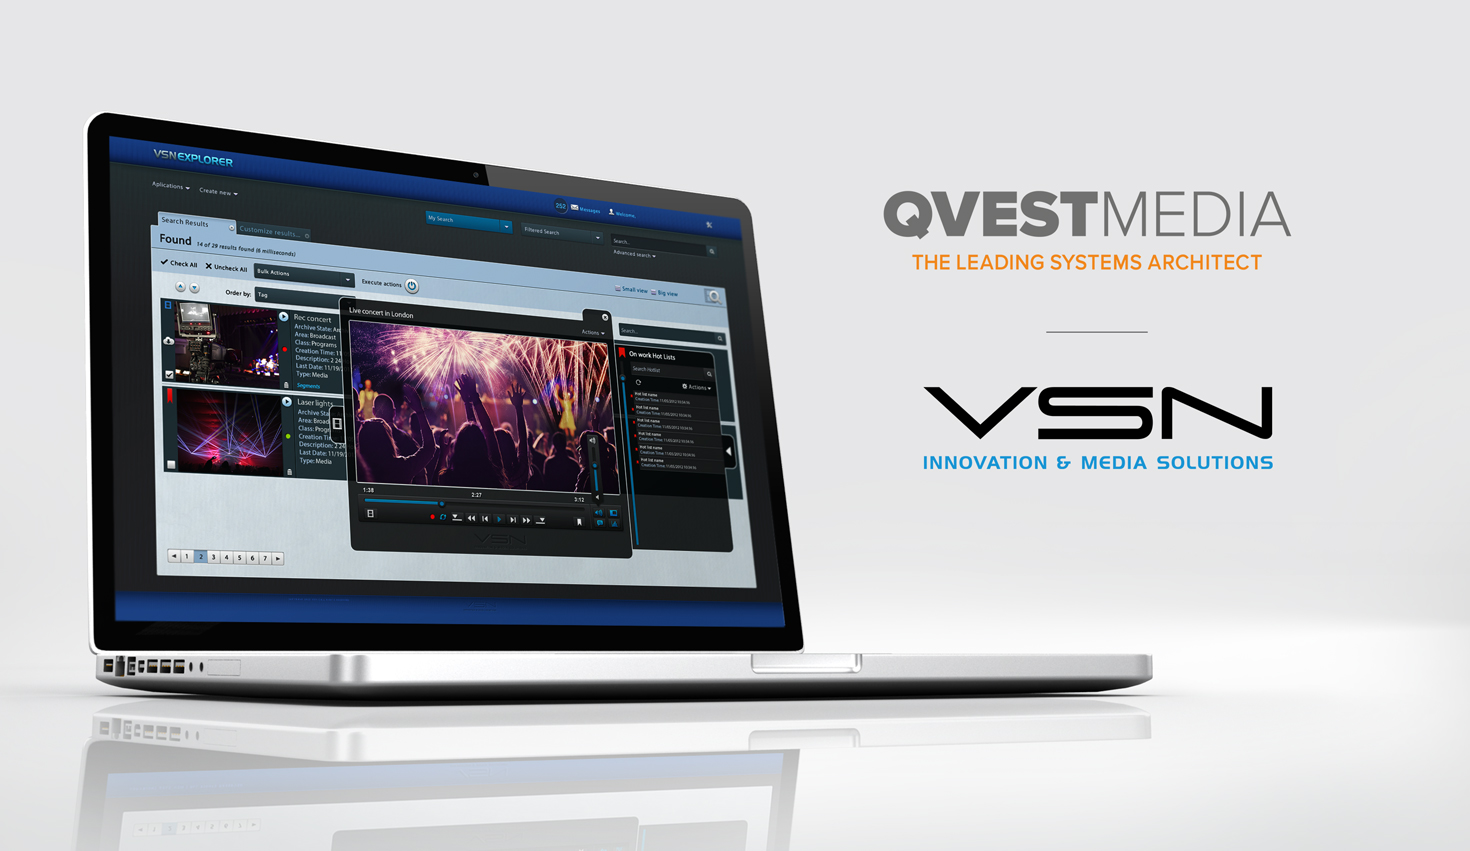 VSN and Qvest Media bundle their cloud management capabilities